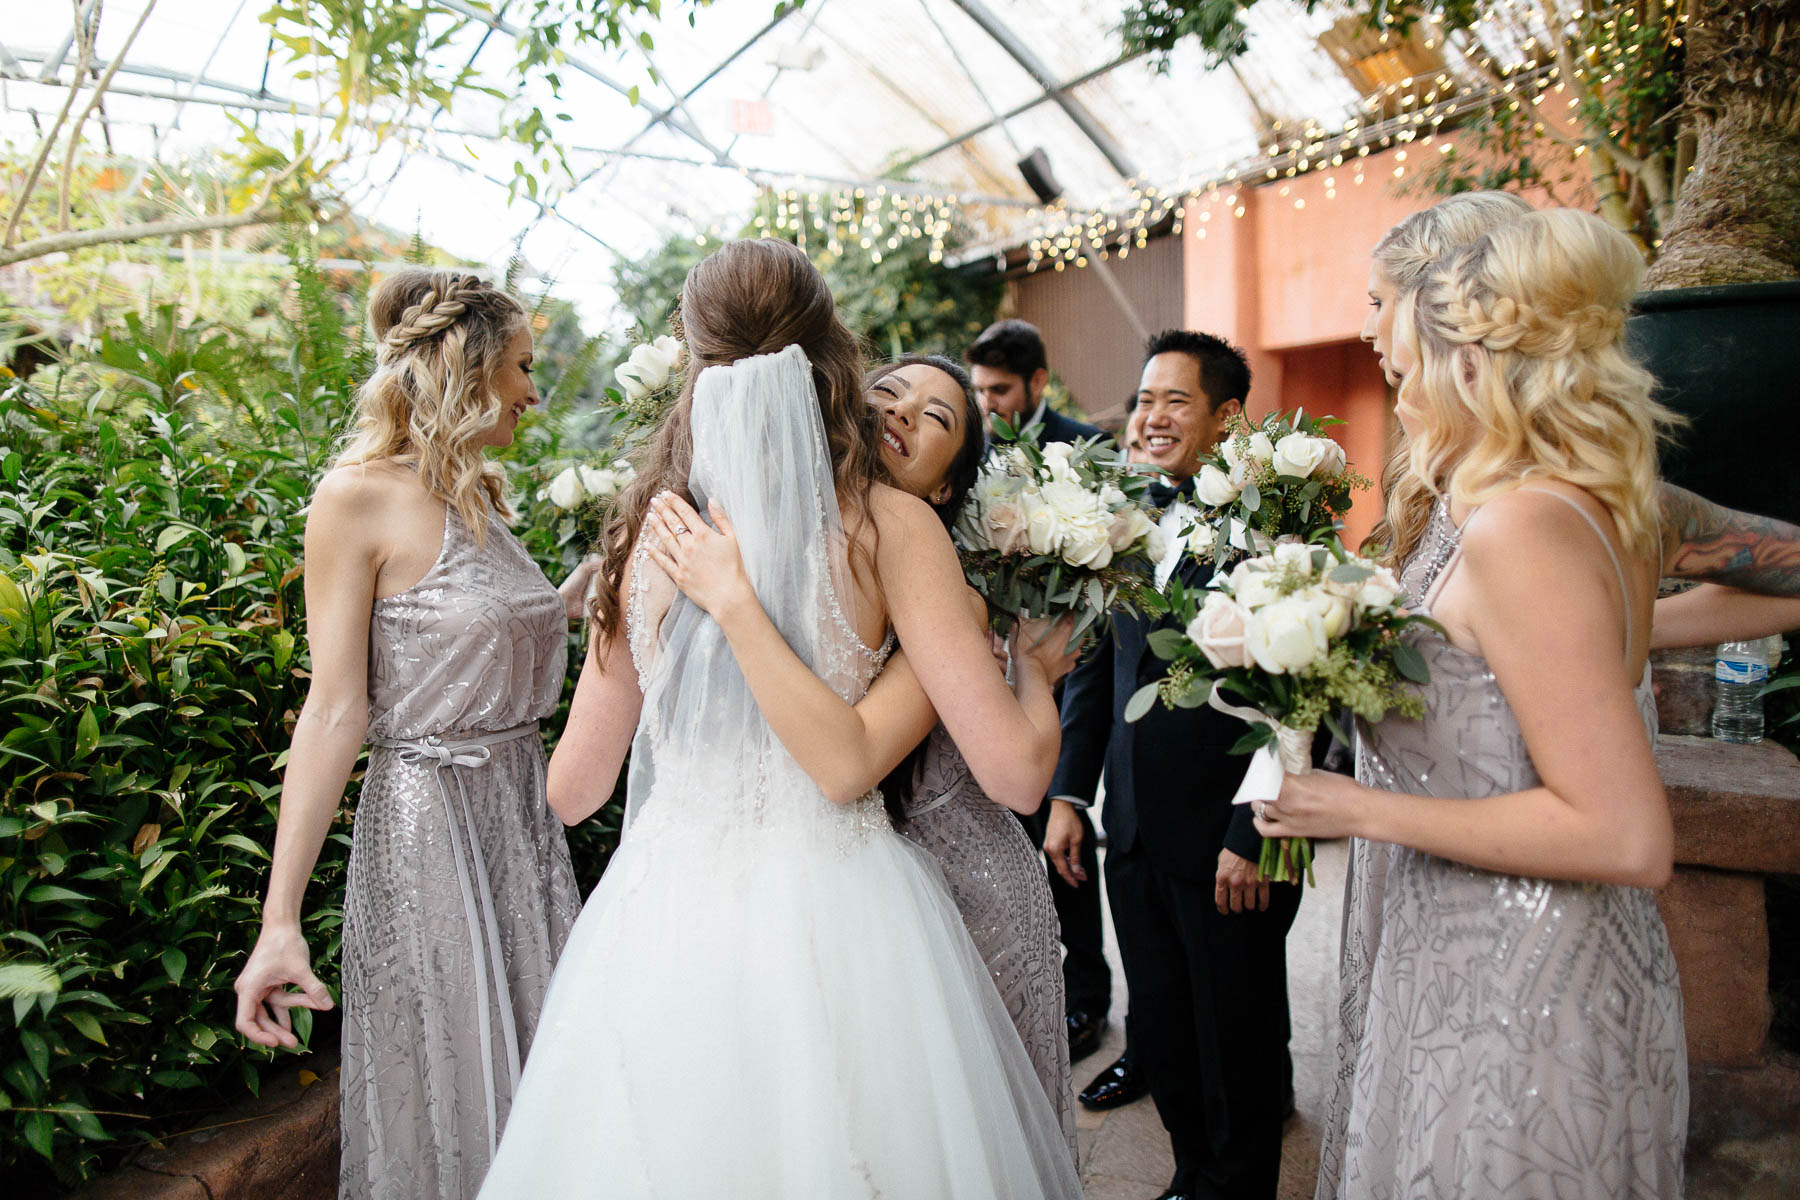 161112-Luxium-Weddings-Arizona-Jon-Madison-Boojum-Tree-First-Look-033.jpg